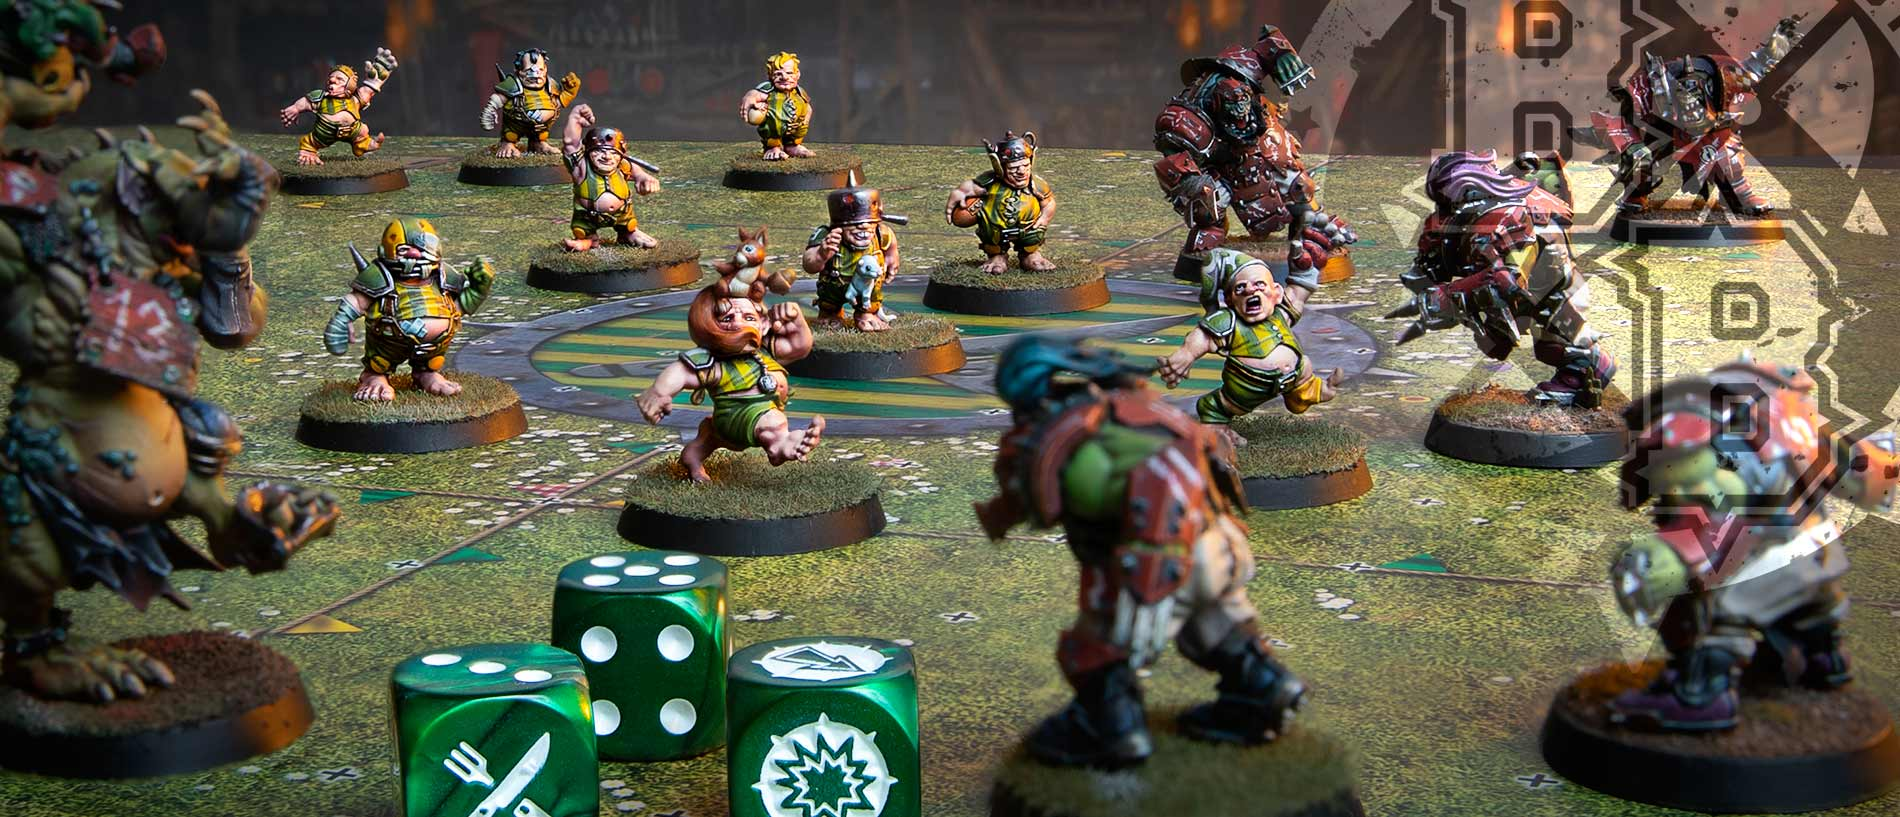 Tiendas Games Home Games Workshop Webstore